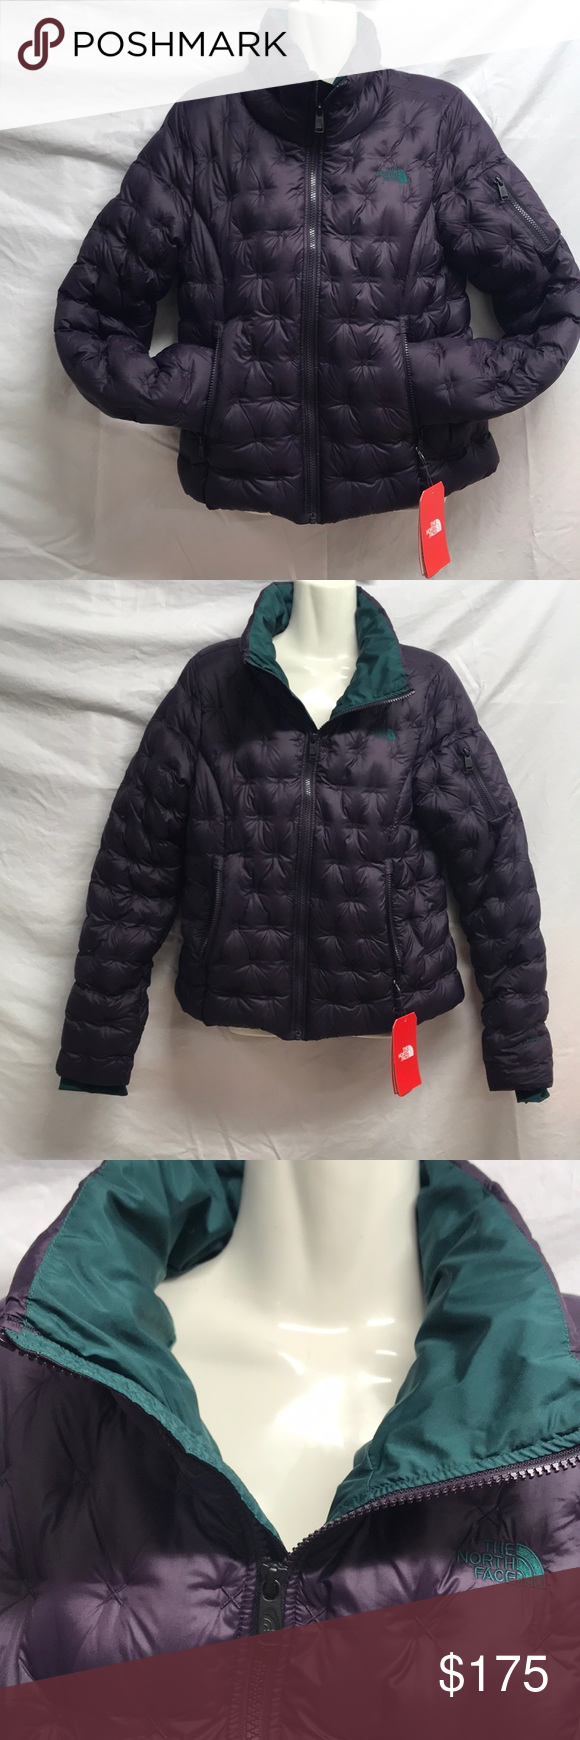 The North Face Women S Holladown Crop Jacket North Face Women Crop Jacket Clothes Design [ 1740 x 580 Pixel ]